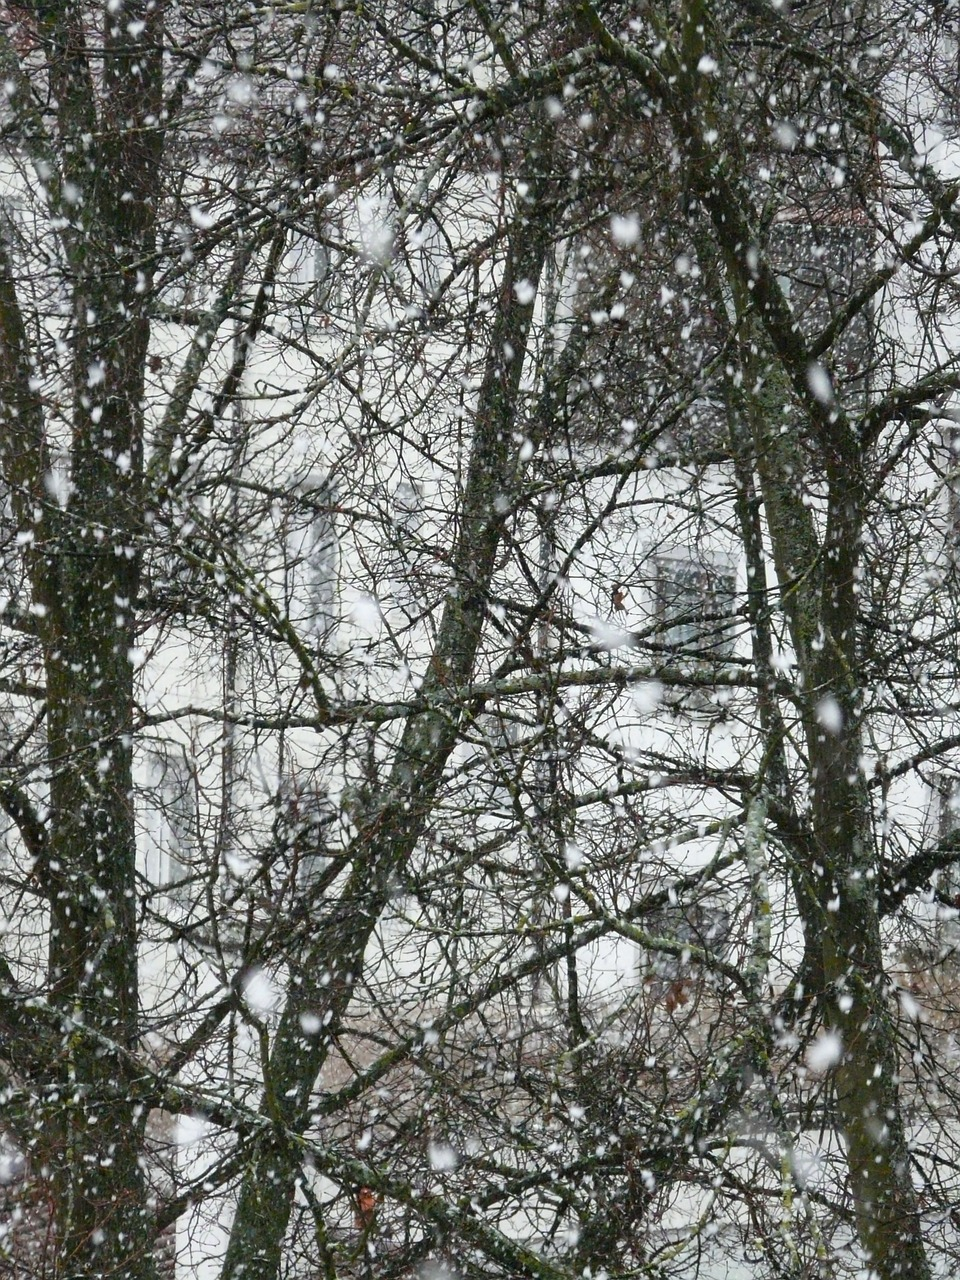 snowfall,snow,snowflakes,blizzard,winter,flake,winter dream,cold,icy,white,snow storms,trees,bad,overview,free pictures, free photos, free images, royalty free, free illustrations, public domain